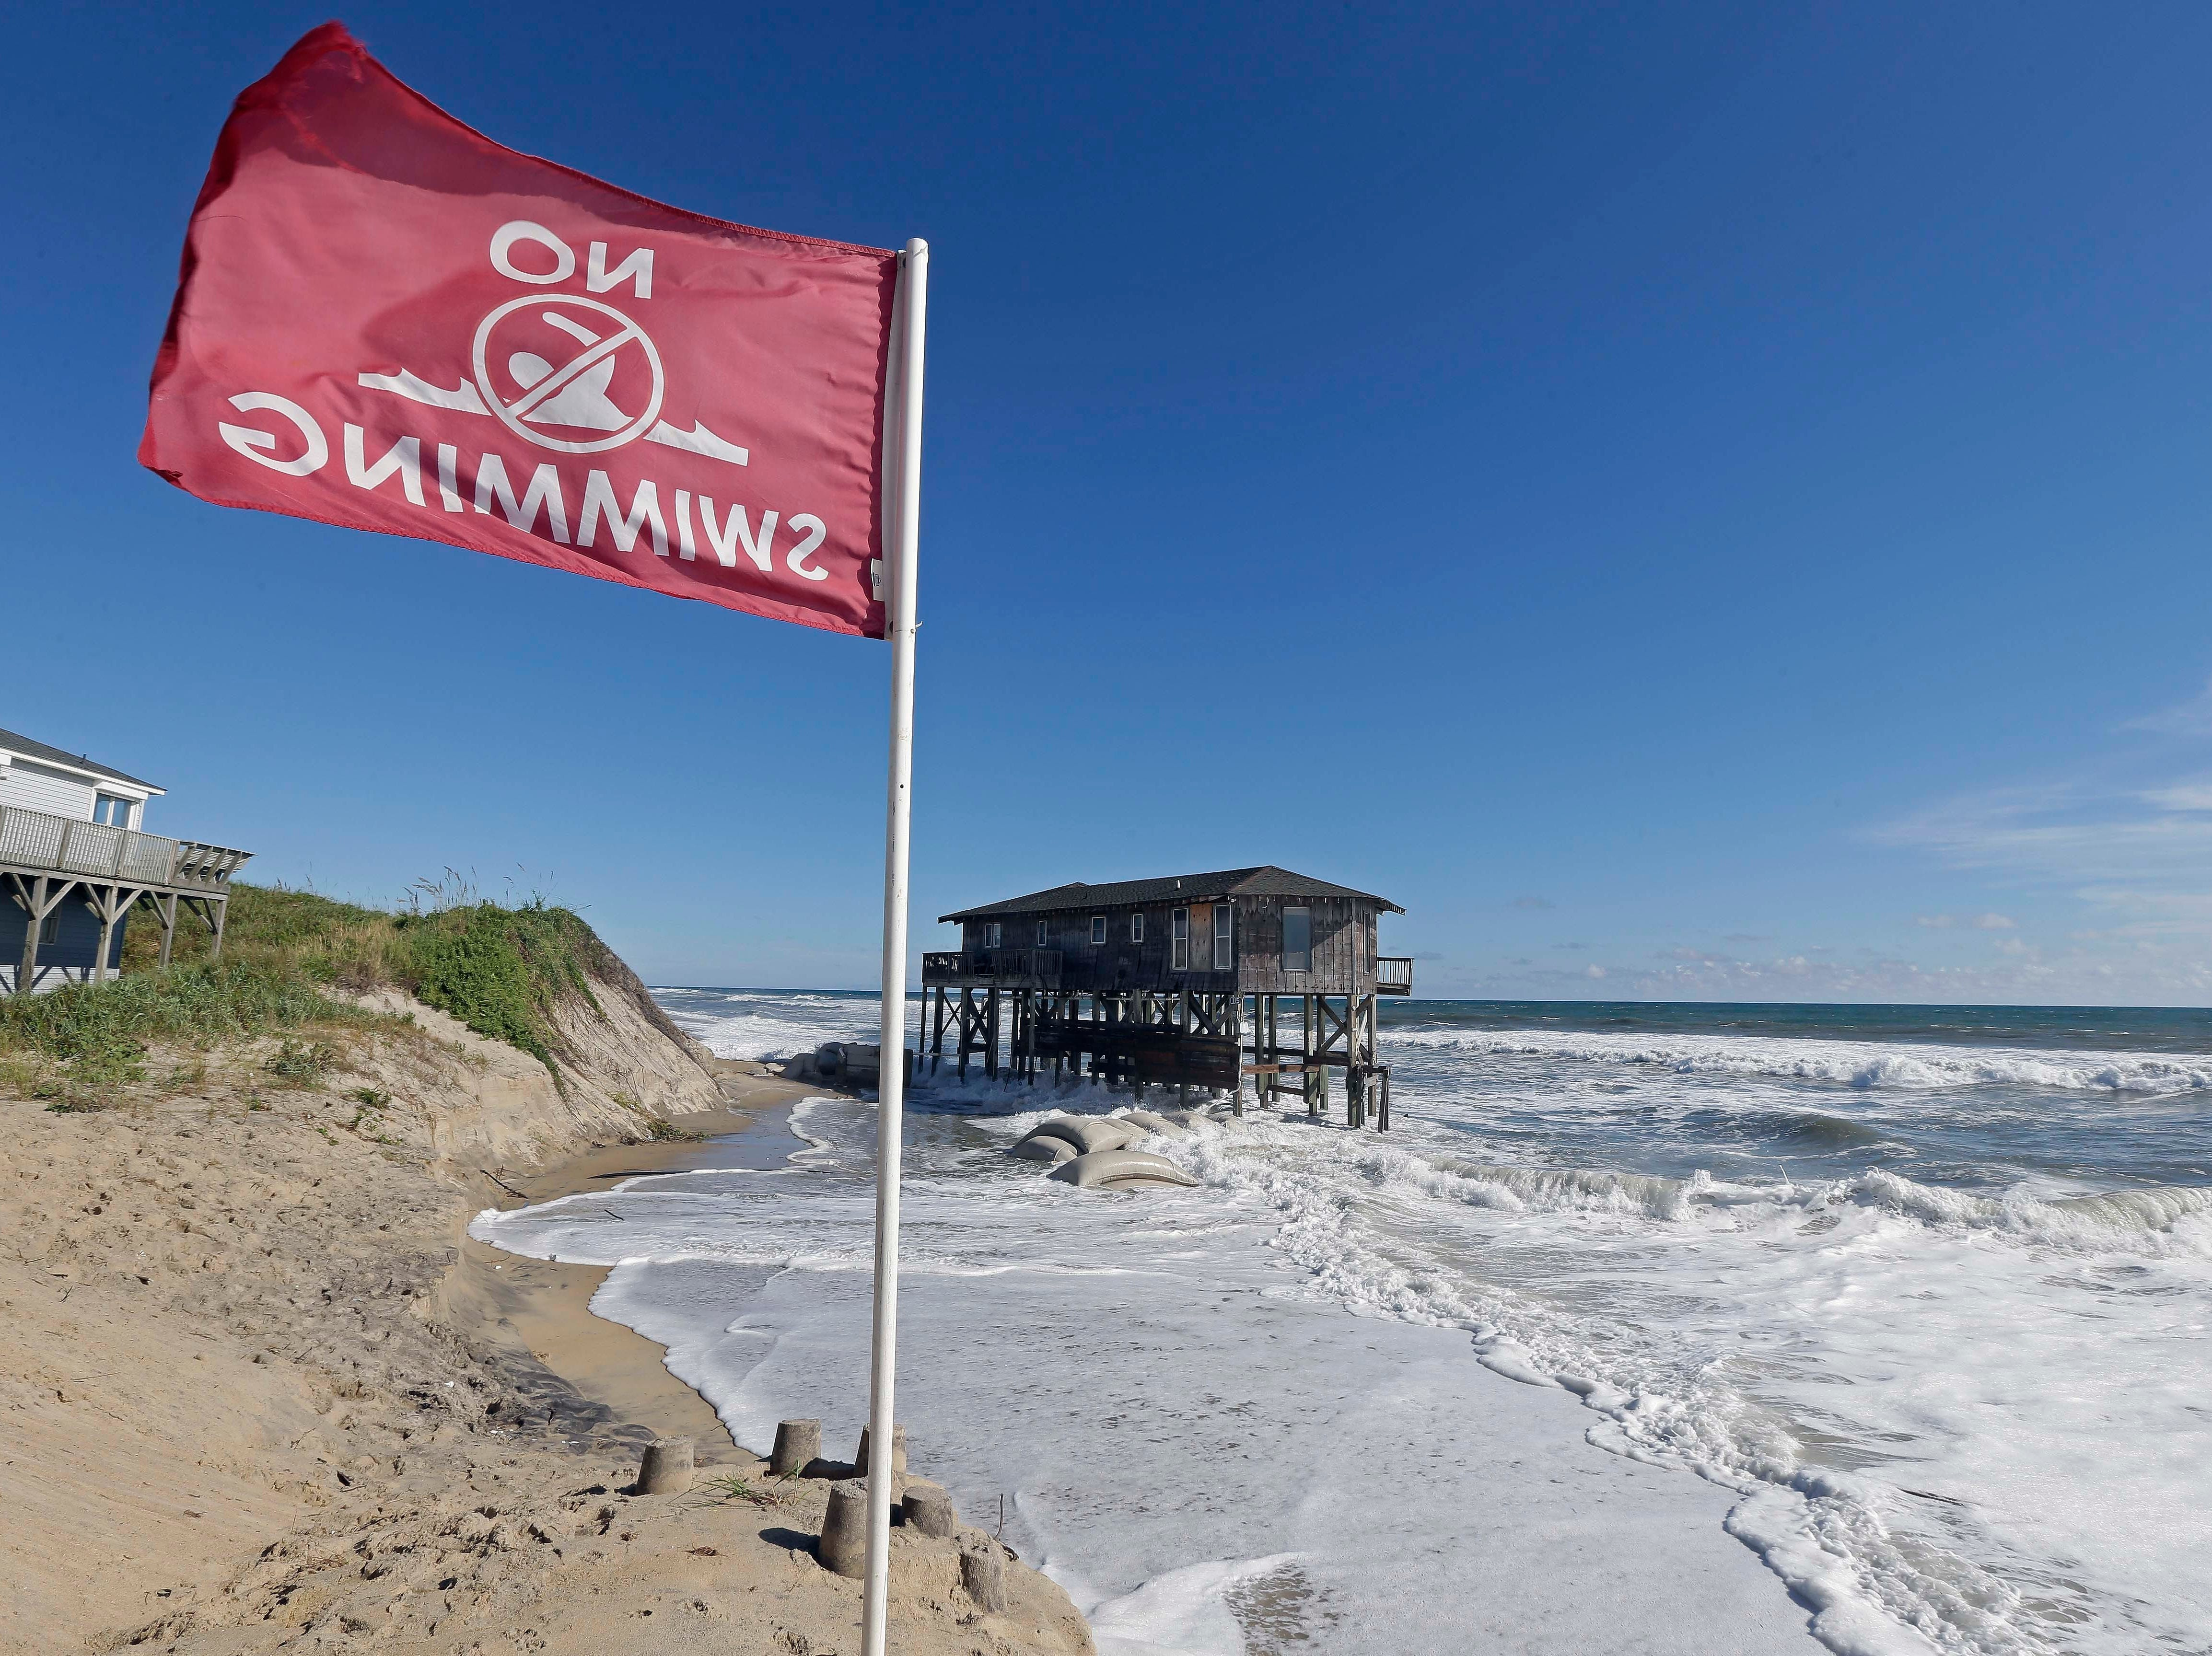 "A warning flag flies as high tide surrounds an old cottage that has already succumbed to long-term beach erosion in Nags Head, N.C., Wednesday, Sept. 12, 2018 as Hurricane Florence approaches the coast of the Carolinas. The National Weather Service says Hurricane Florence ""will likely be the storm of a lifetime for portions of the Carolina coast."""